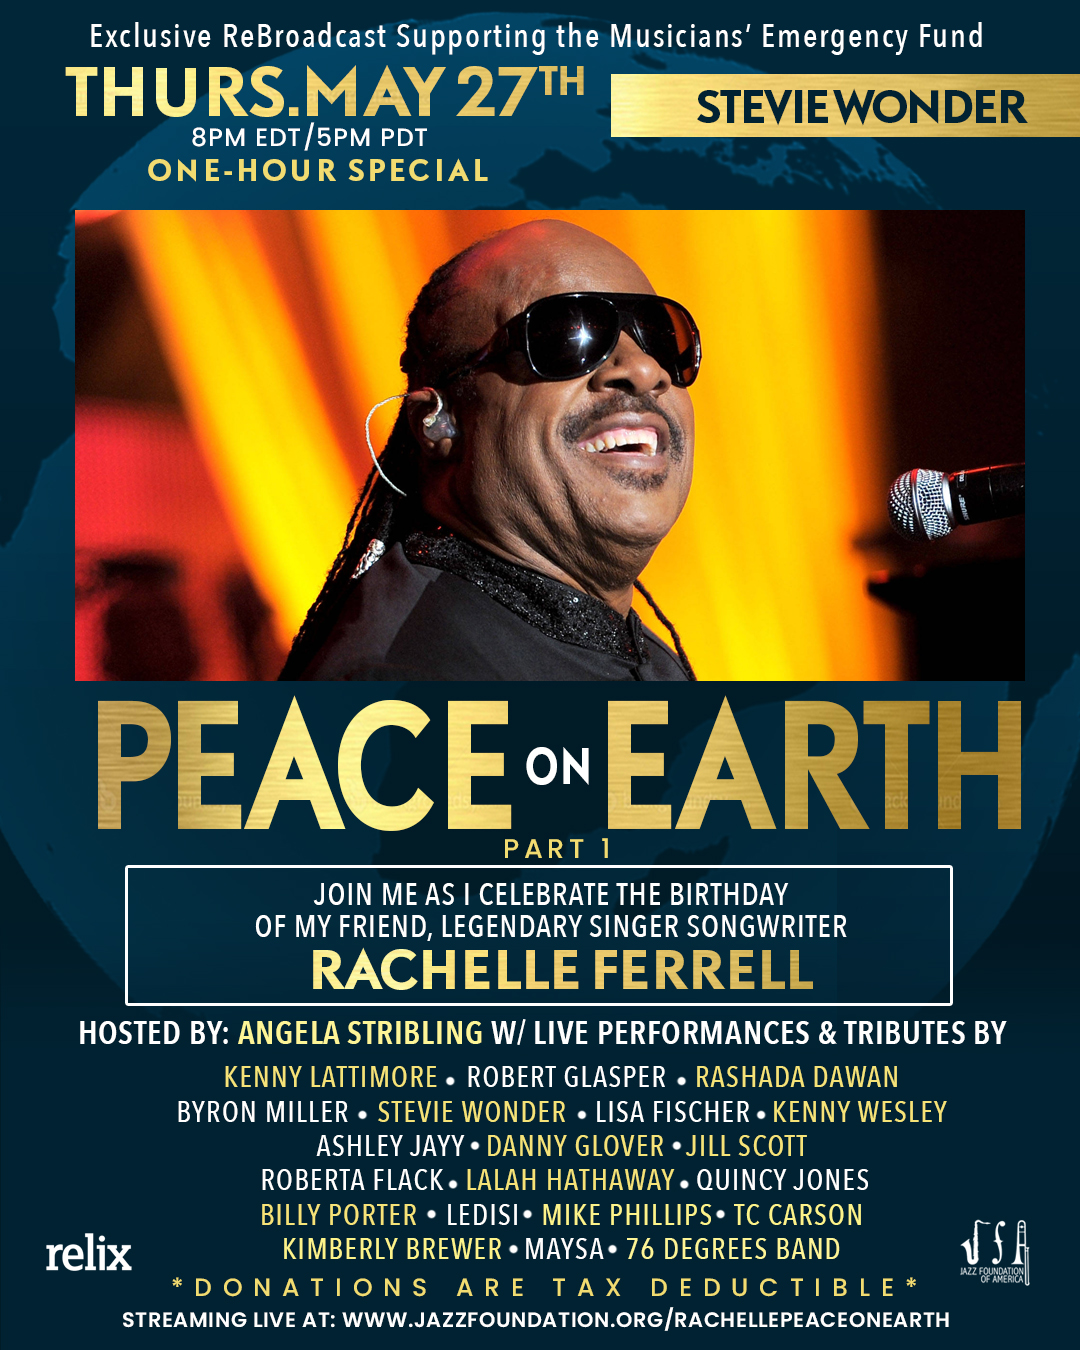 PeaceOnEarthStevieWonder